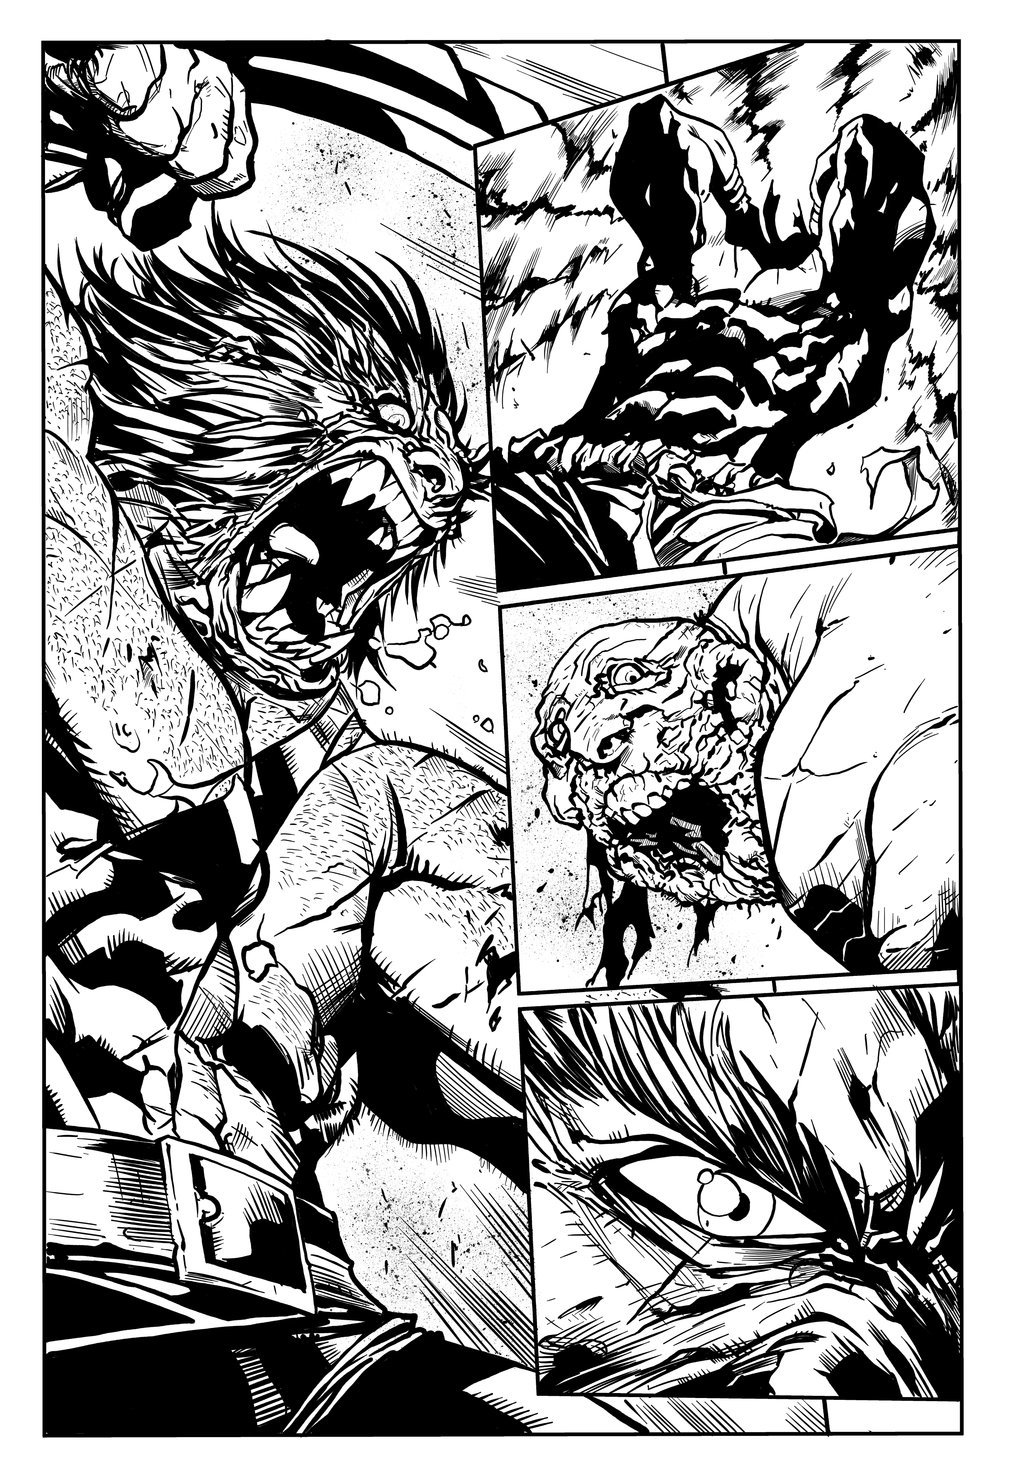 Matt james joe mad savage wolverine sequential sample 1 by mattjamescomicarts d82mv4c